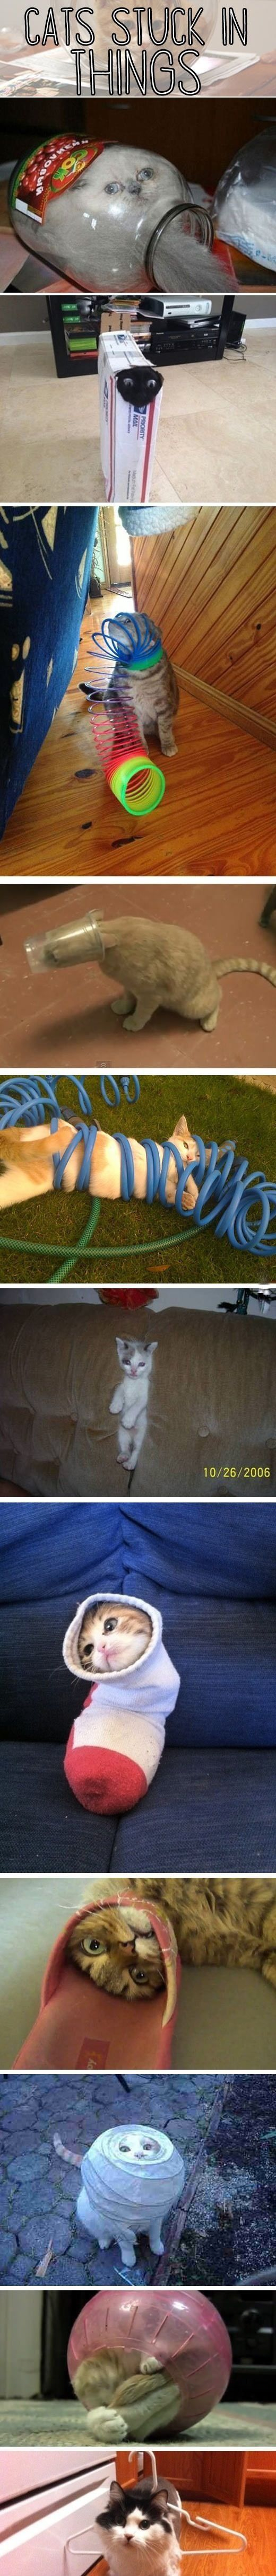 I could just pee looking at the cat stuck in the Chinese Lantern, and the slinky and hose.